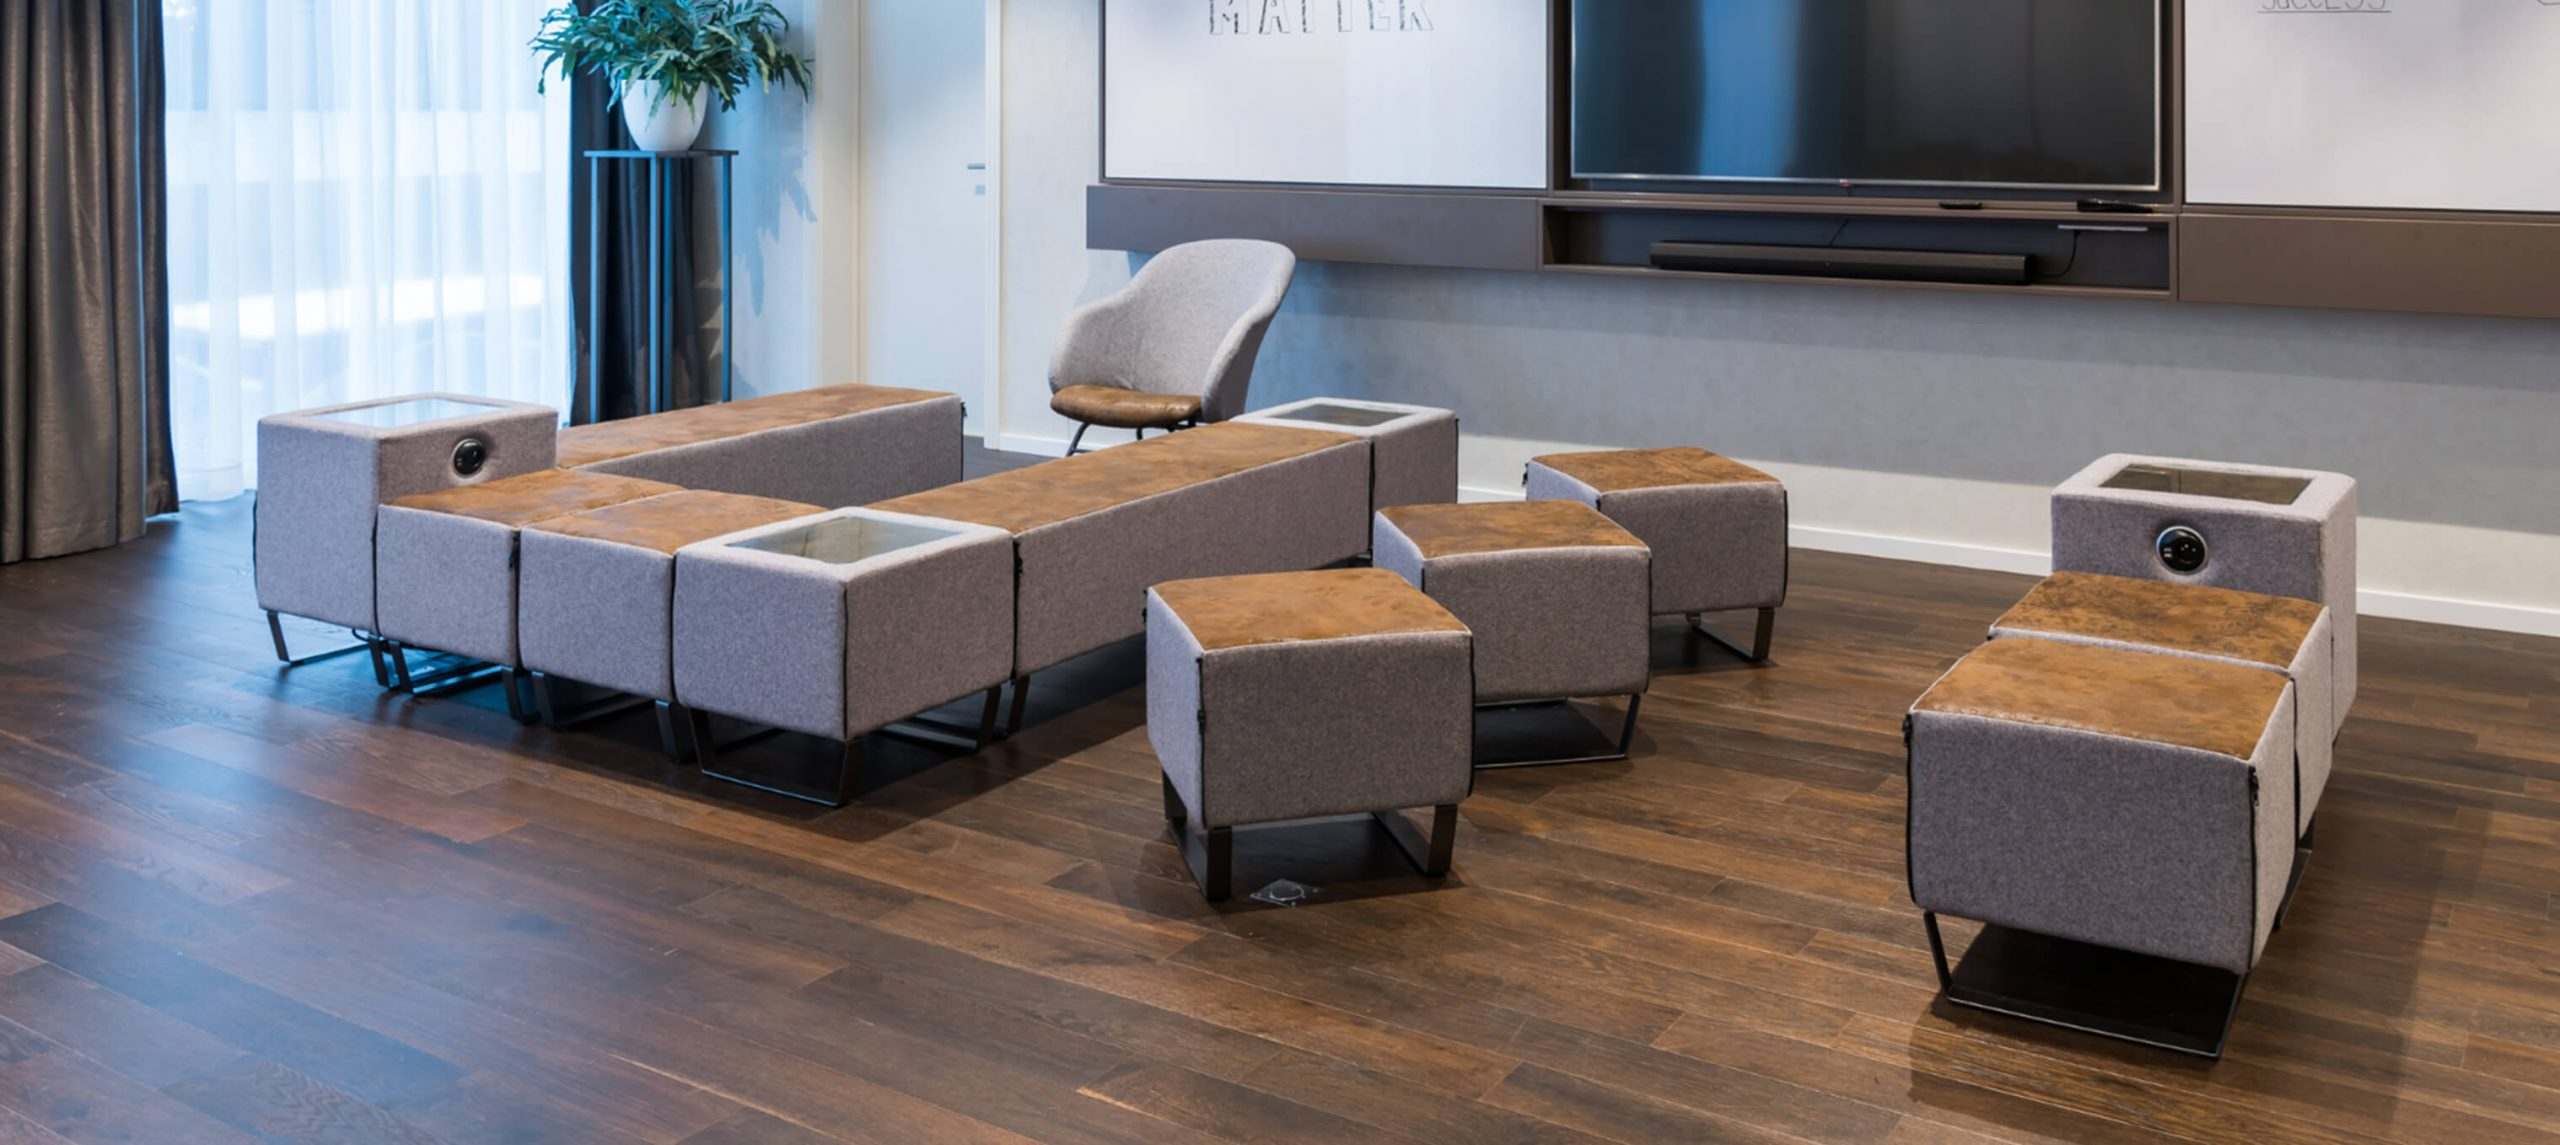 Smart Qube Soft Seating Range